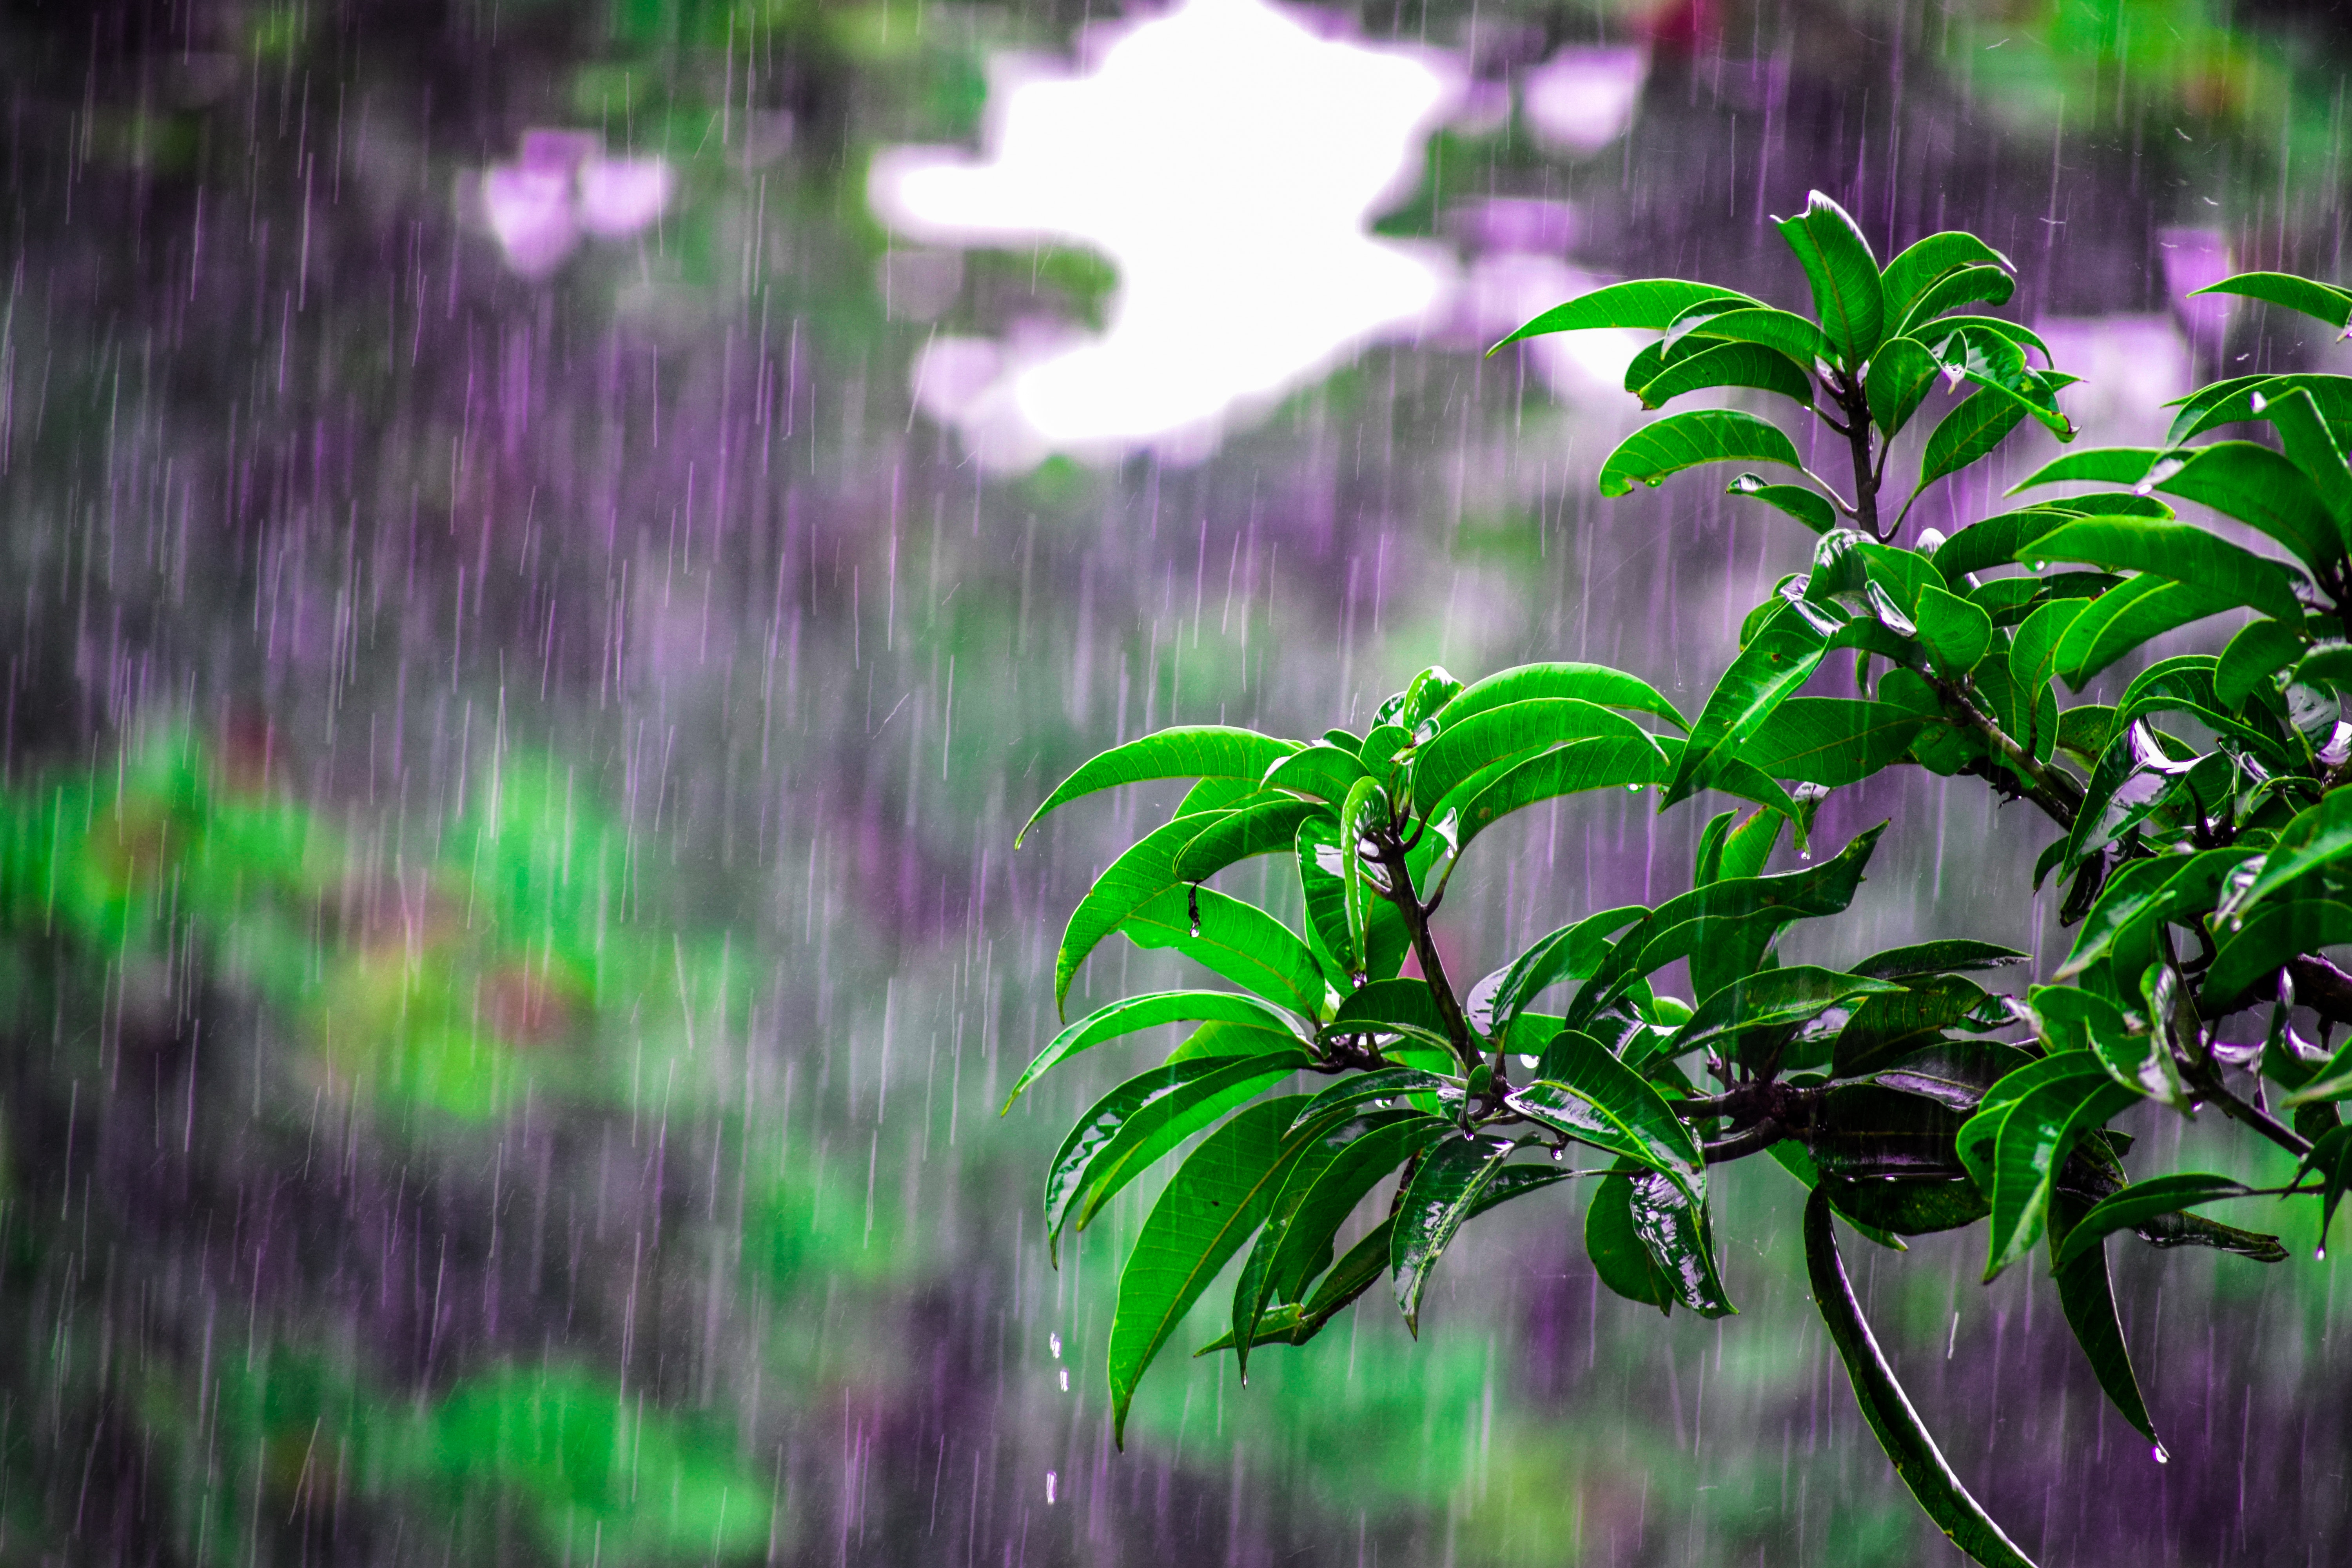 pouring rain and a plant